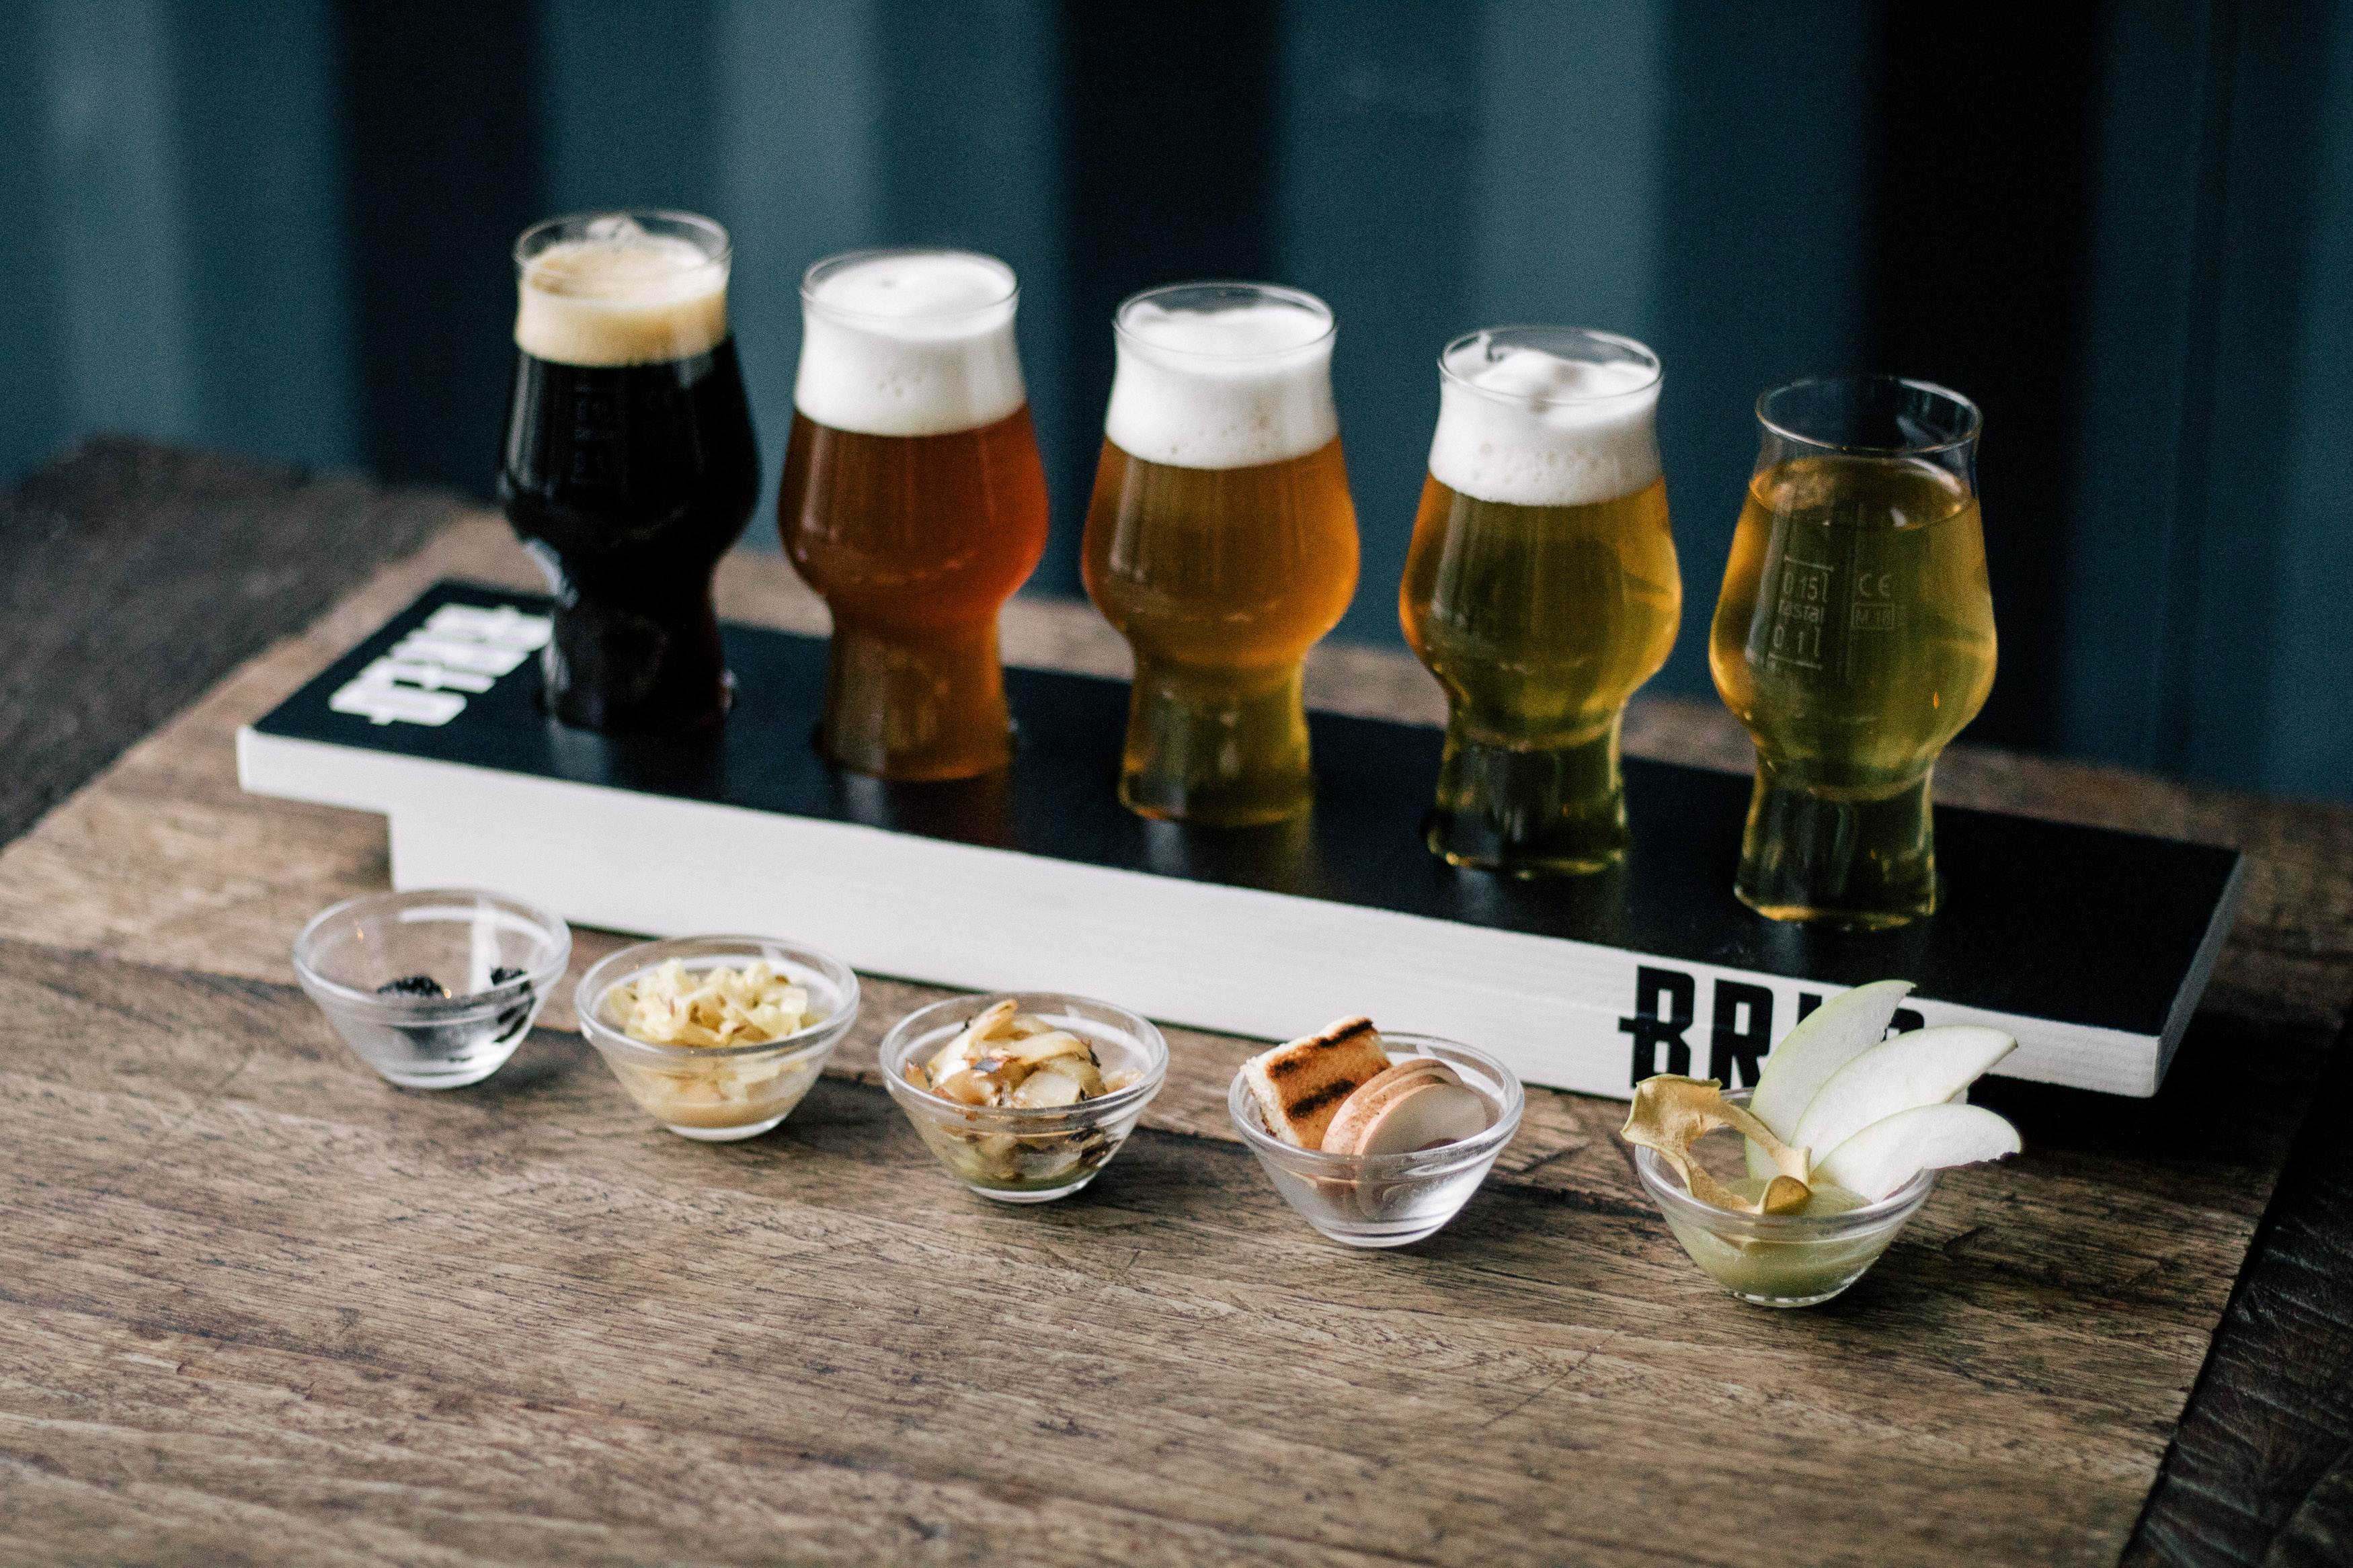 BRLO offers a tasting board with food pairings